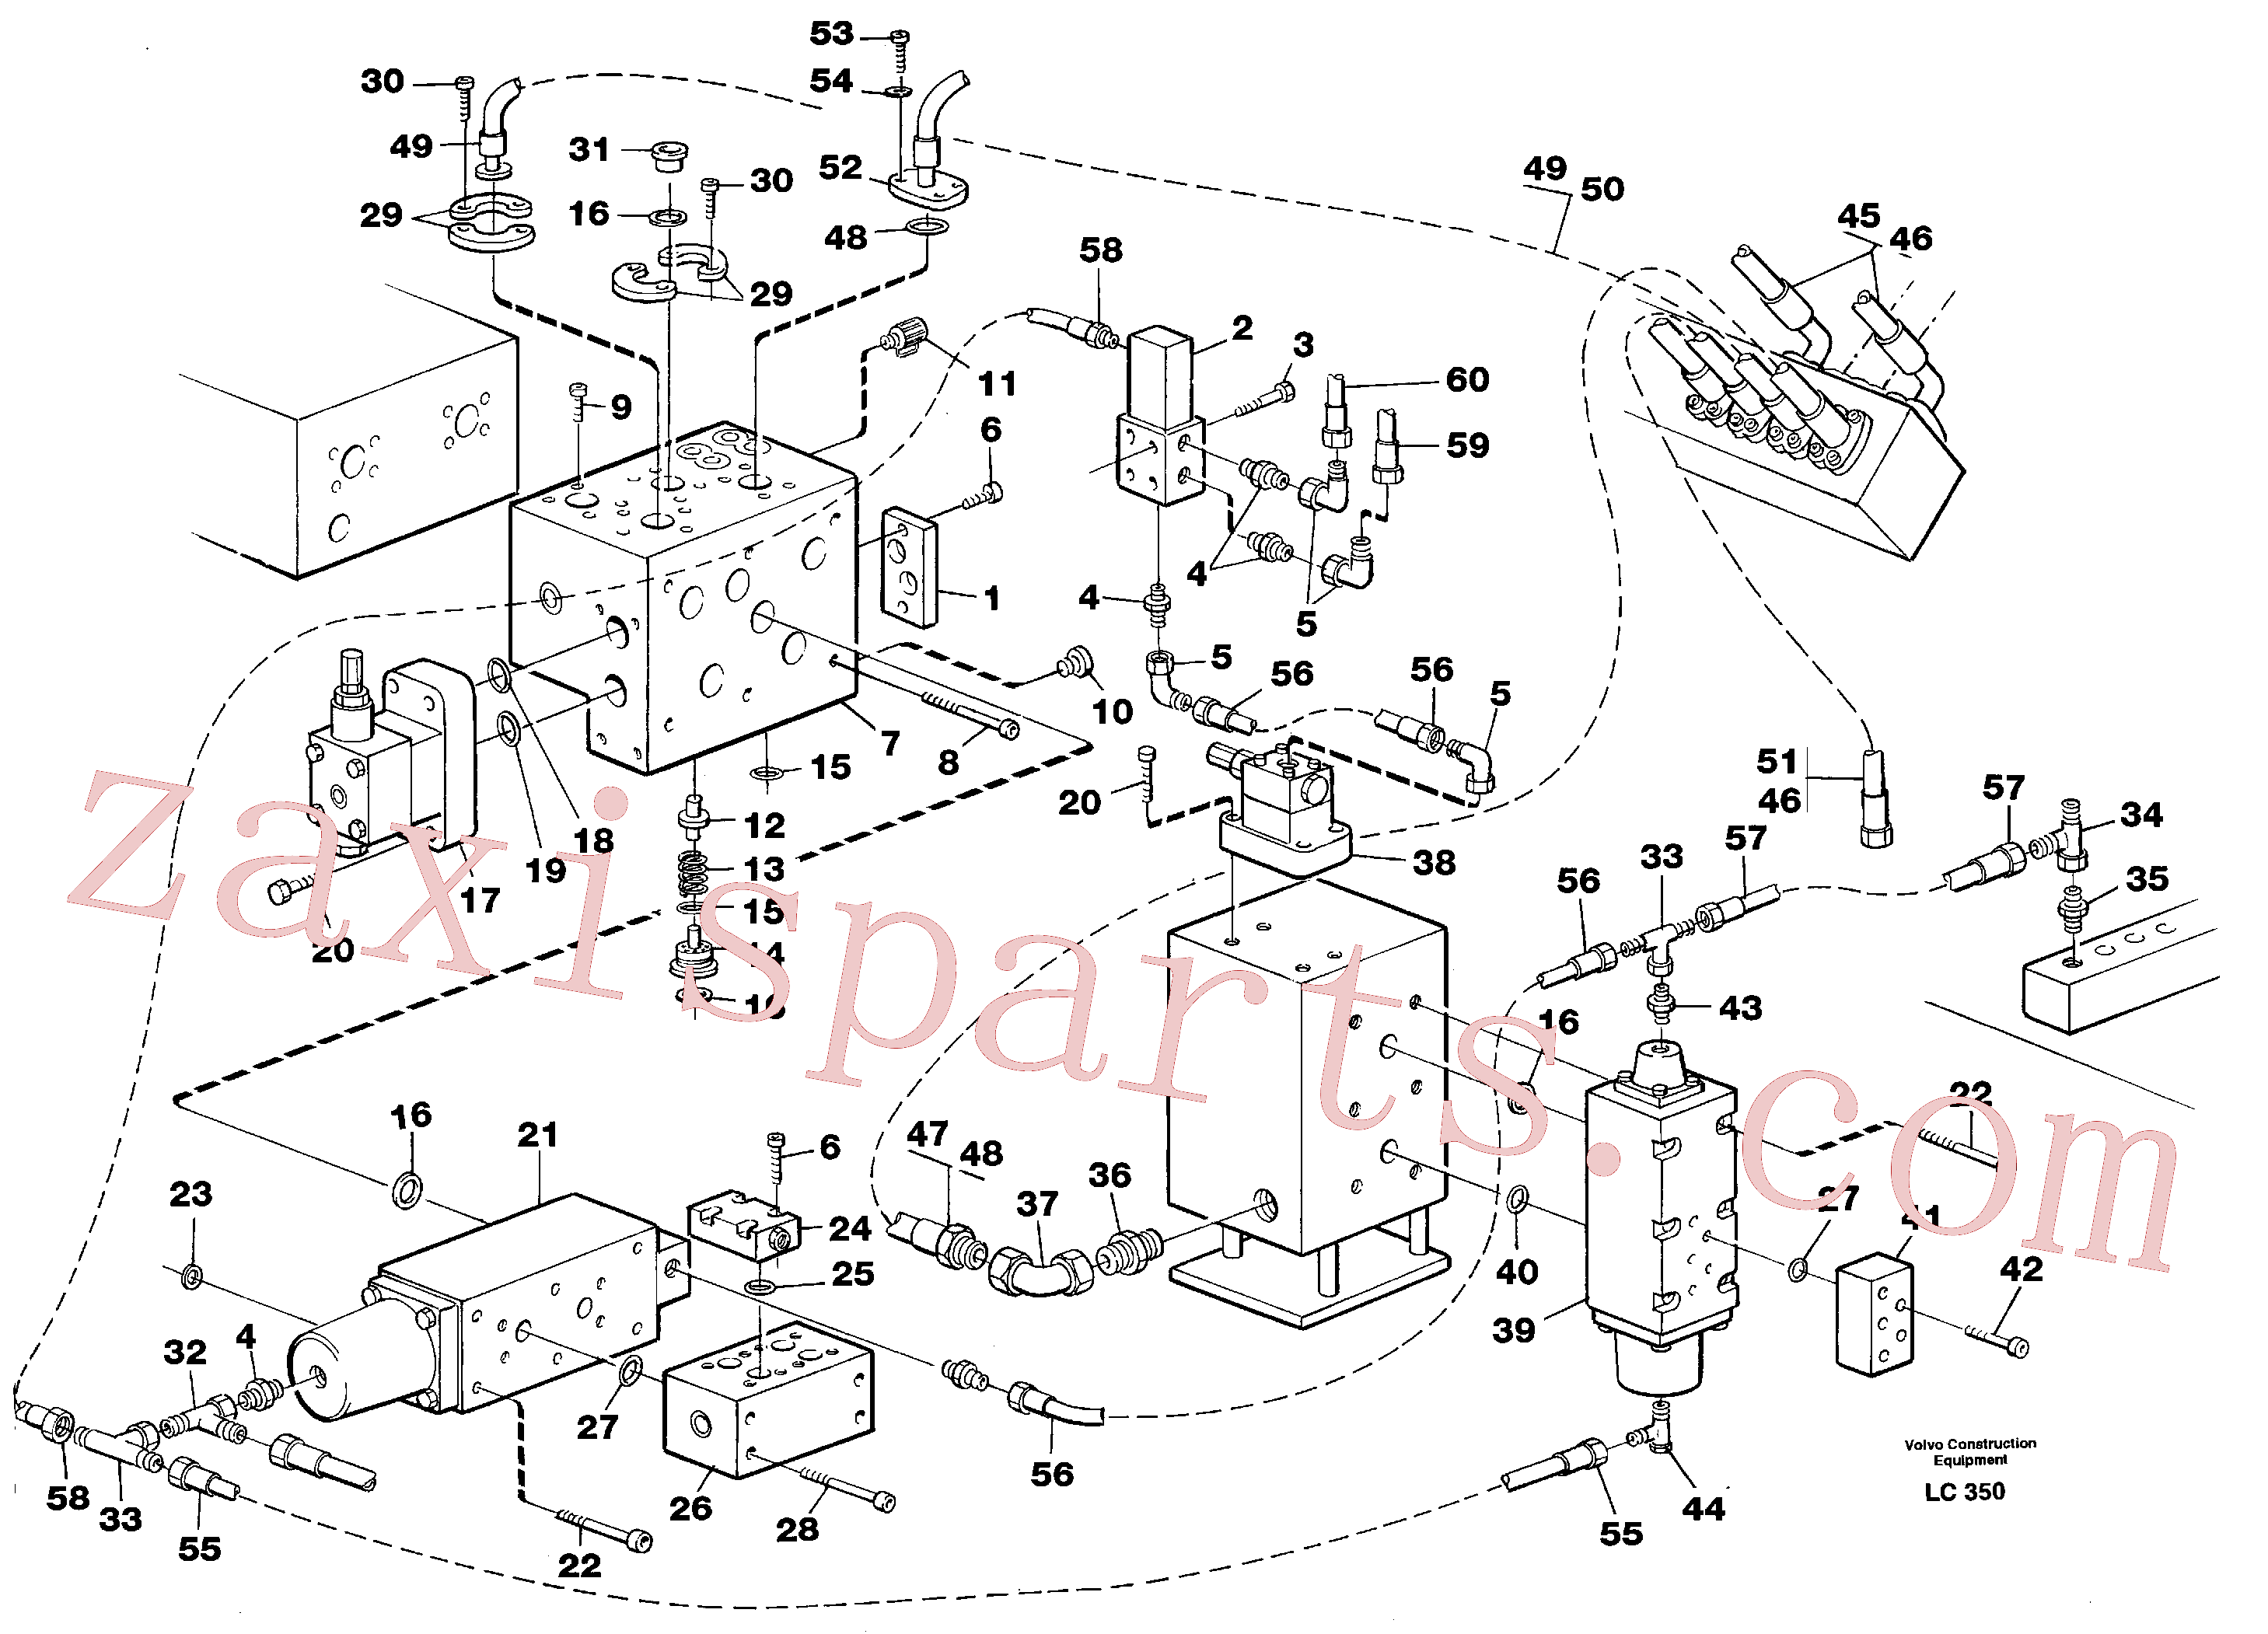 VOE14265516 for Volvo Hammer hydraulics on base machine(LC350 assembly)